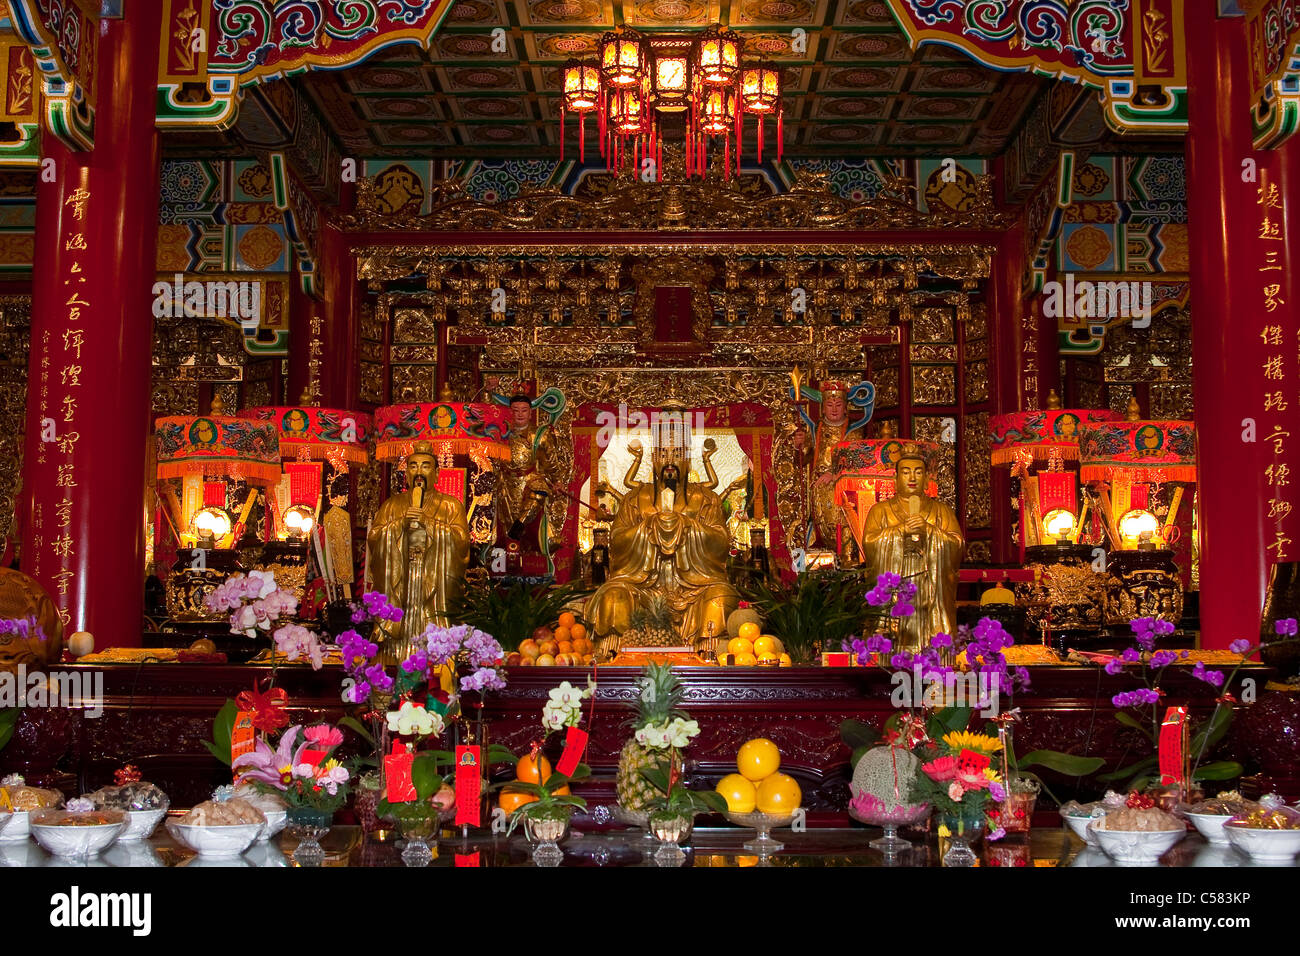 Asia, construction, constructions, portrait format, houses, homes, culture, art craft, pagoda, religion, sacred - Stock Image